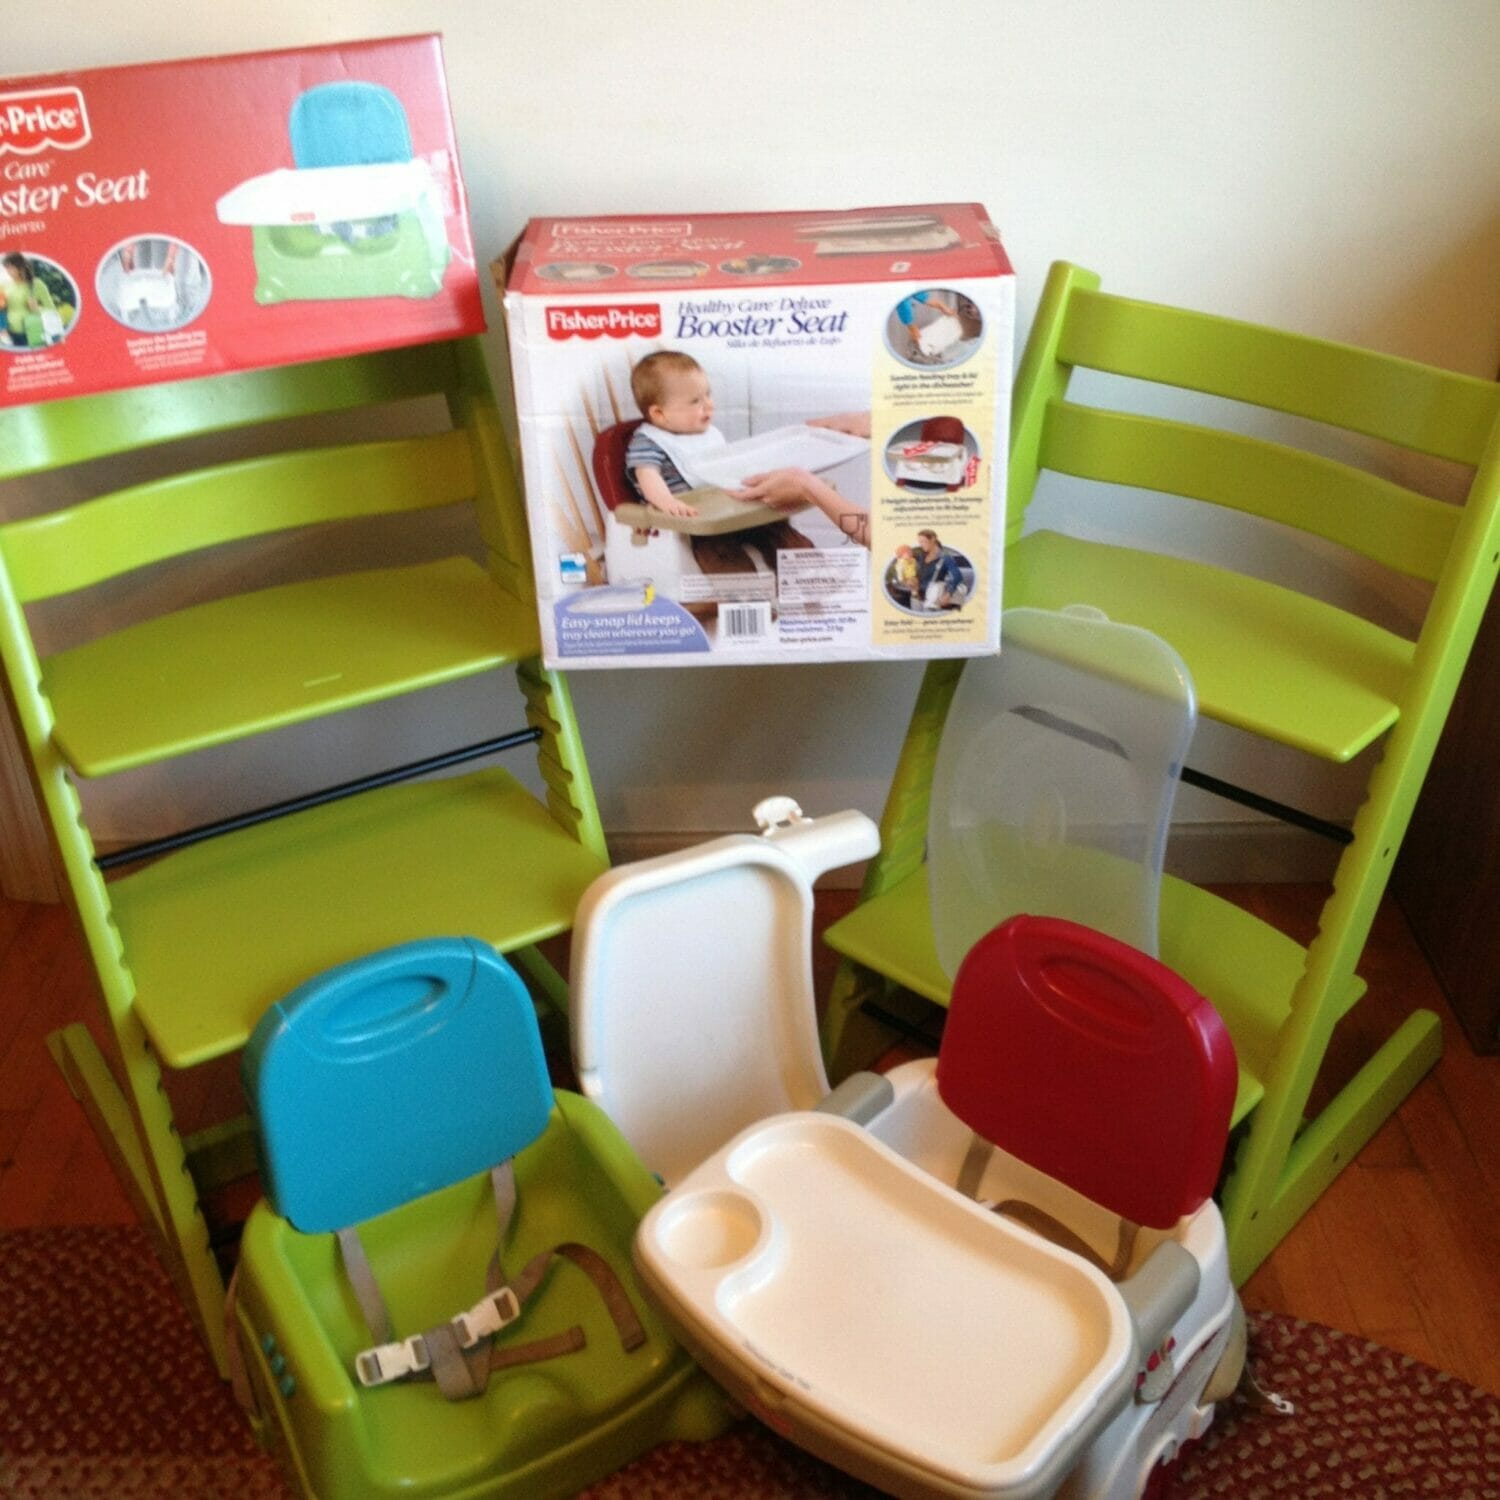 From Best Highchair Ever to Only Booster You'll Need: My Top Picks